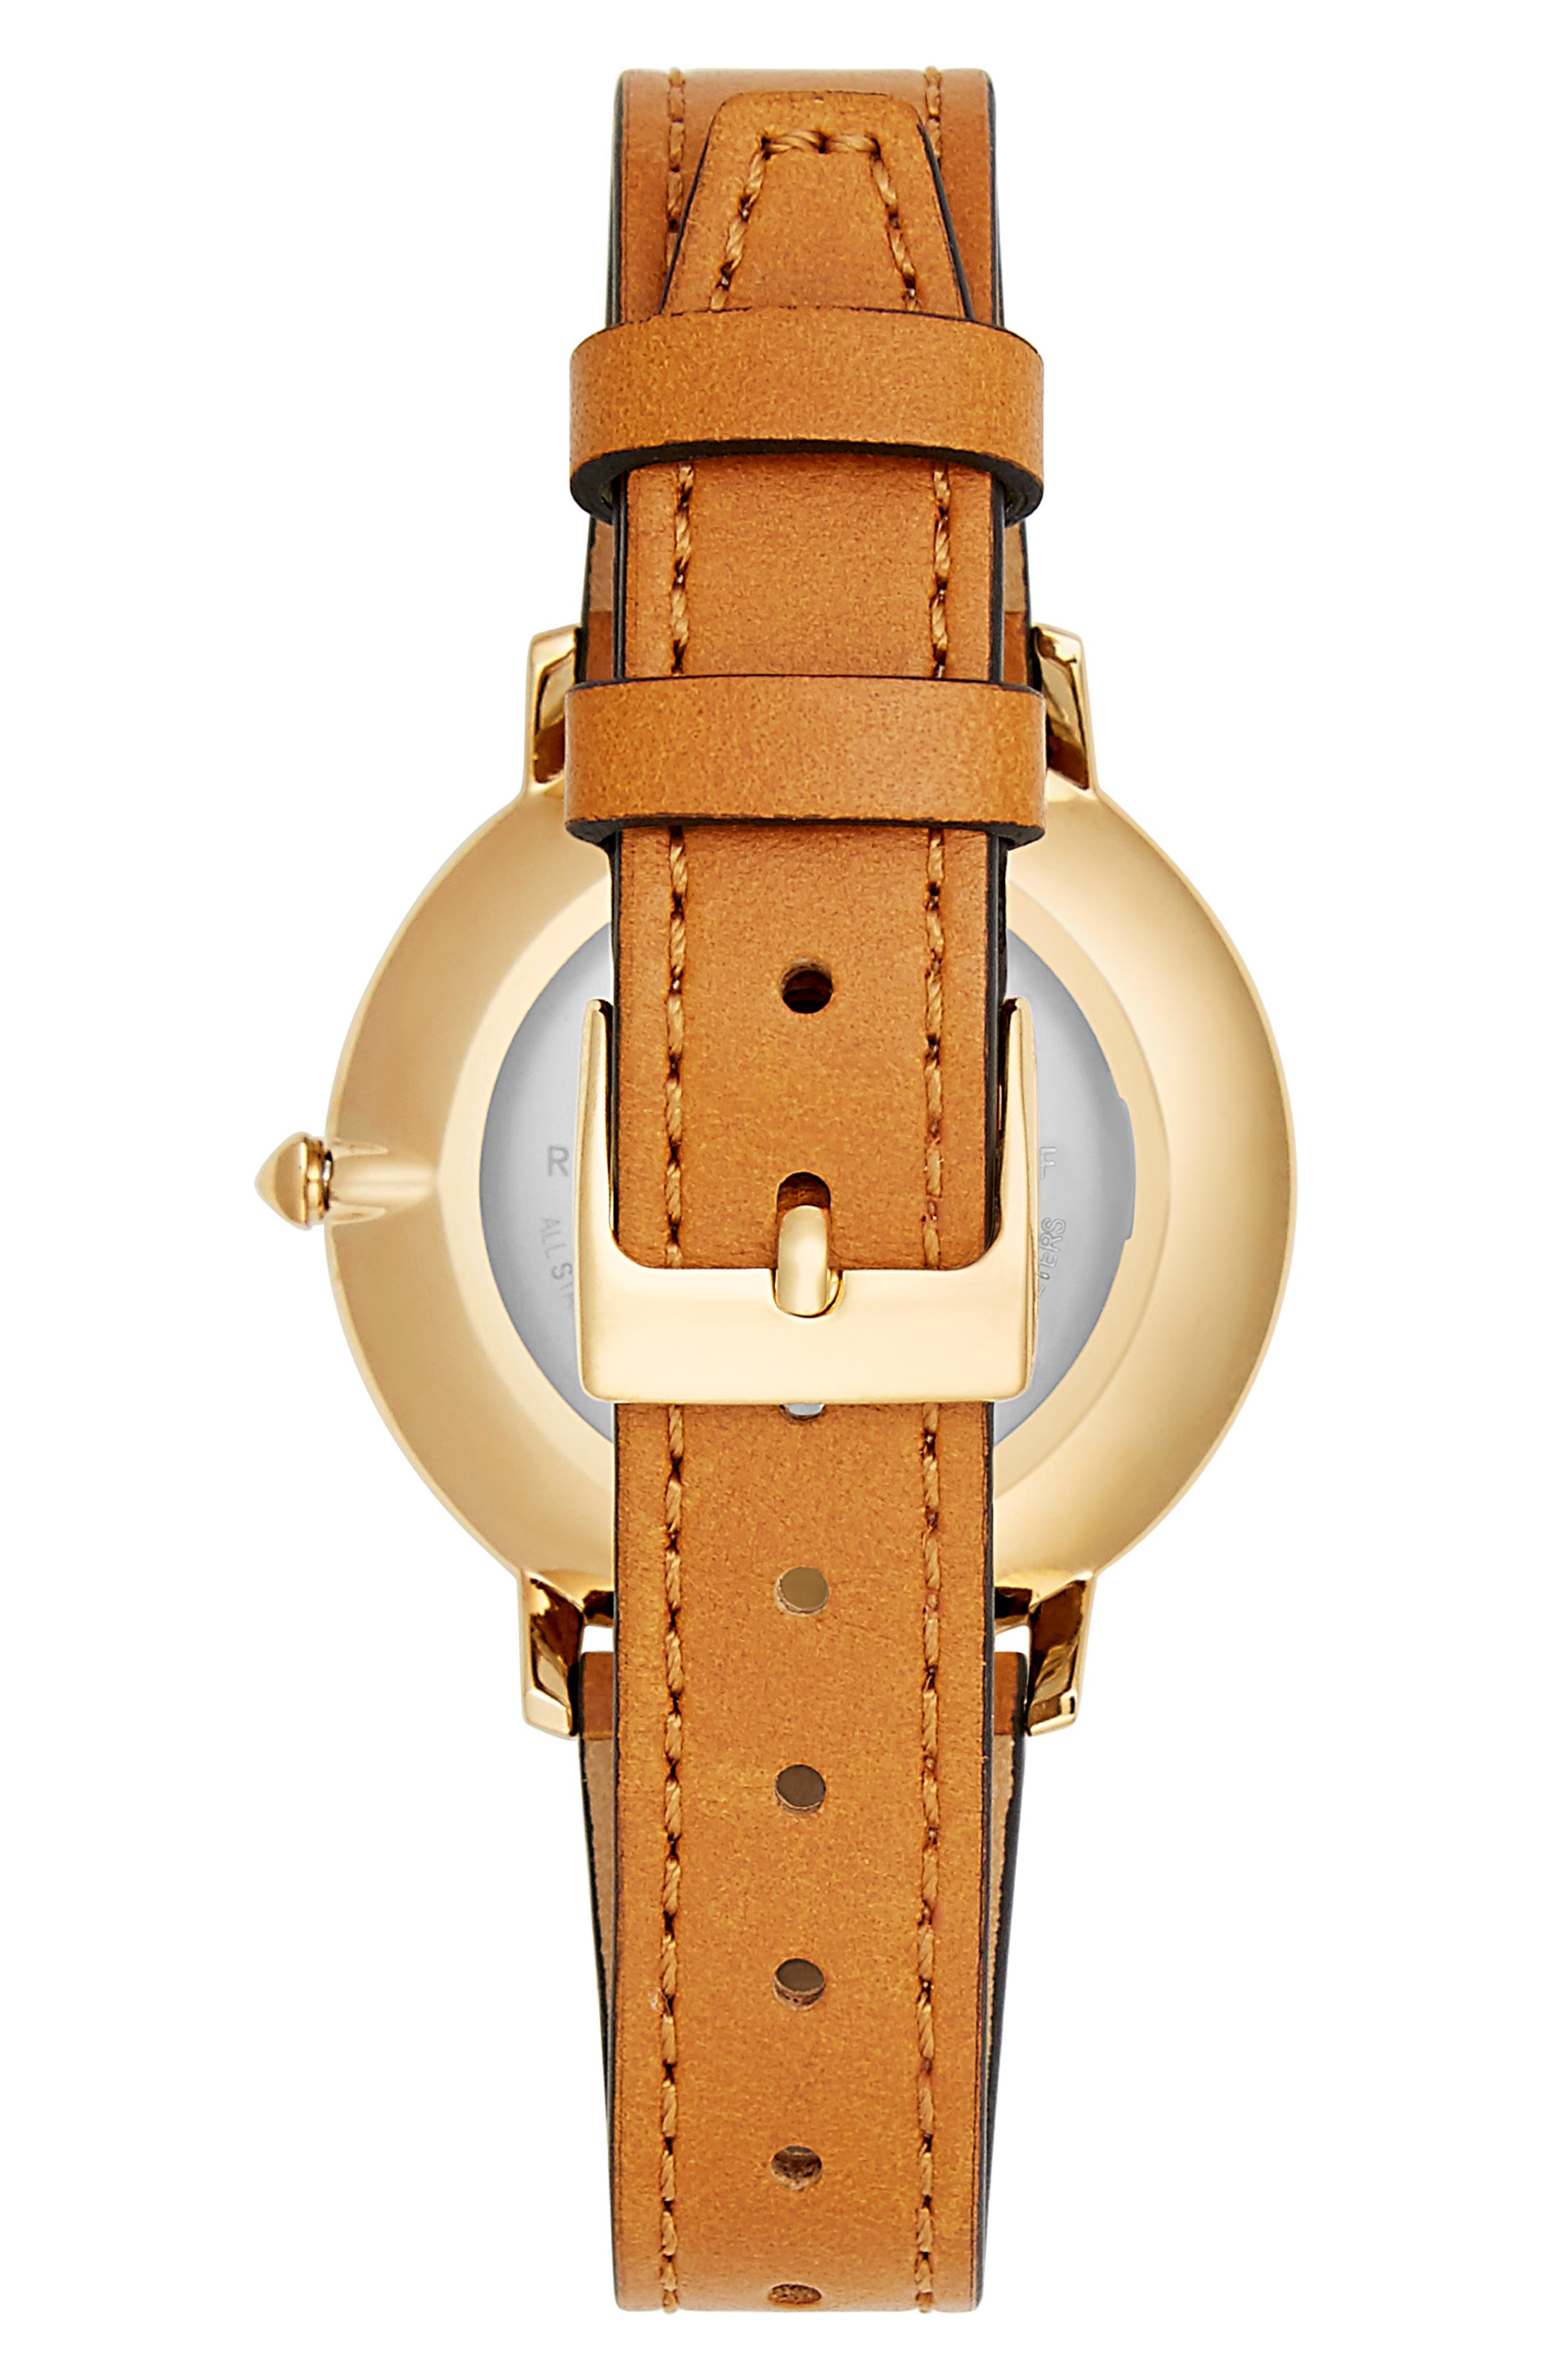 Rebeca Minkoff Major GRL PWR Leather Strap Watch, 35mm,                             Alternate thumbnail 2, color,                             ALMOND/ SILVER/ GOLD